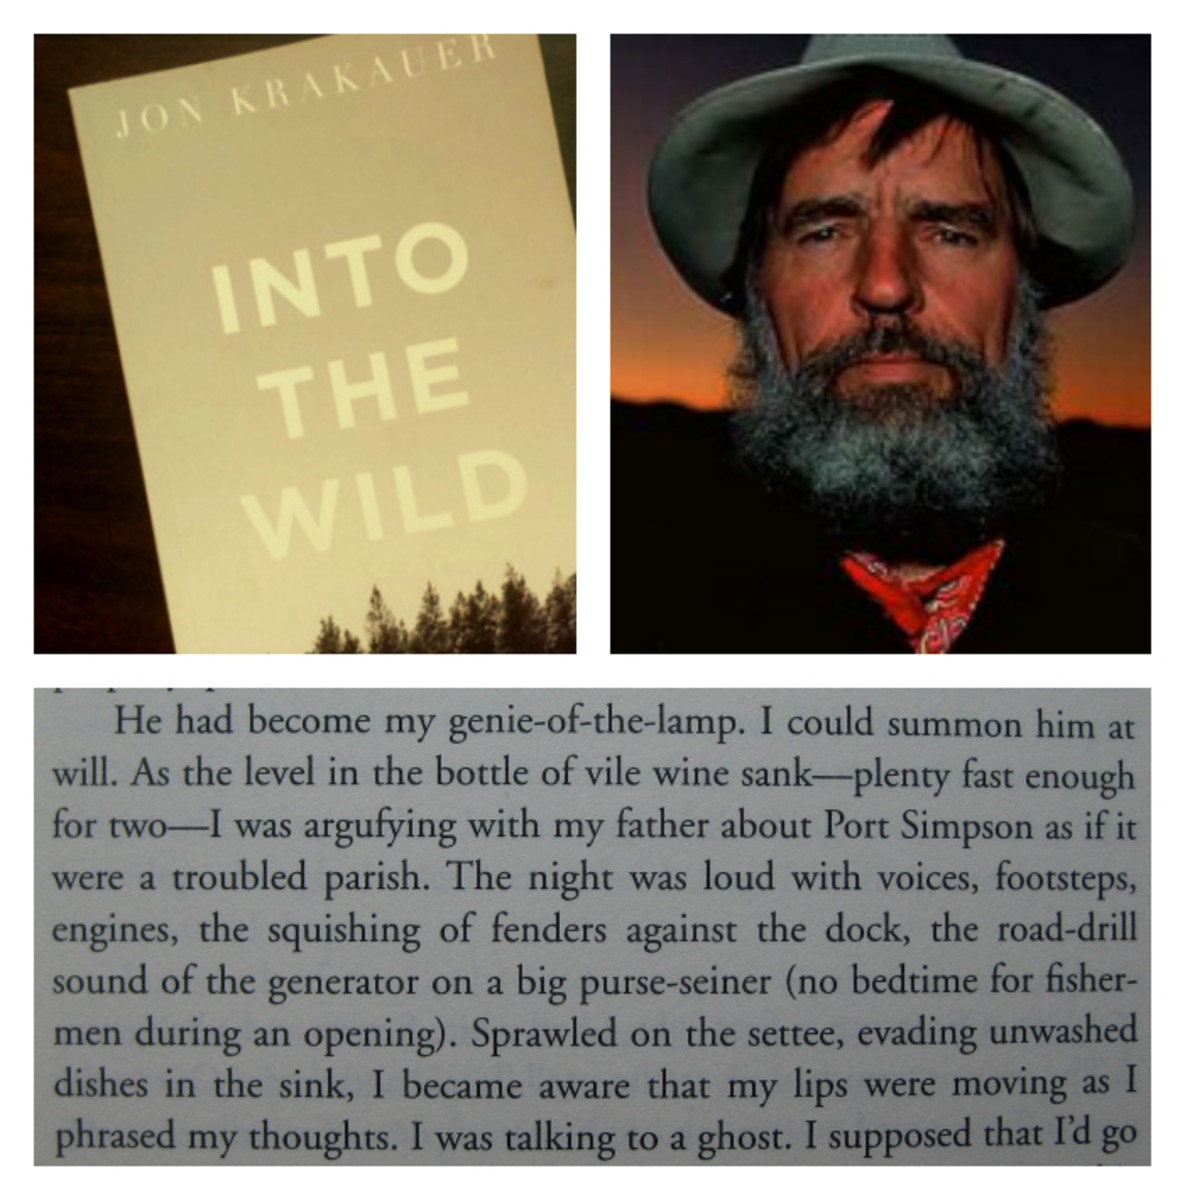 From top left, clockwise: A copy of Into the Wild (Photo: solarisgirl/Flickr); Edward Abbey (Photo: Tillman/Wikimedia Commons); and text from A Passage to Juneau (Photo: Wolf Gang/Flickr).